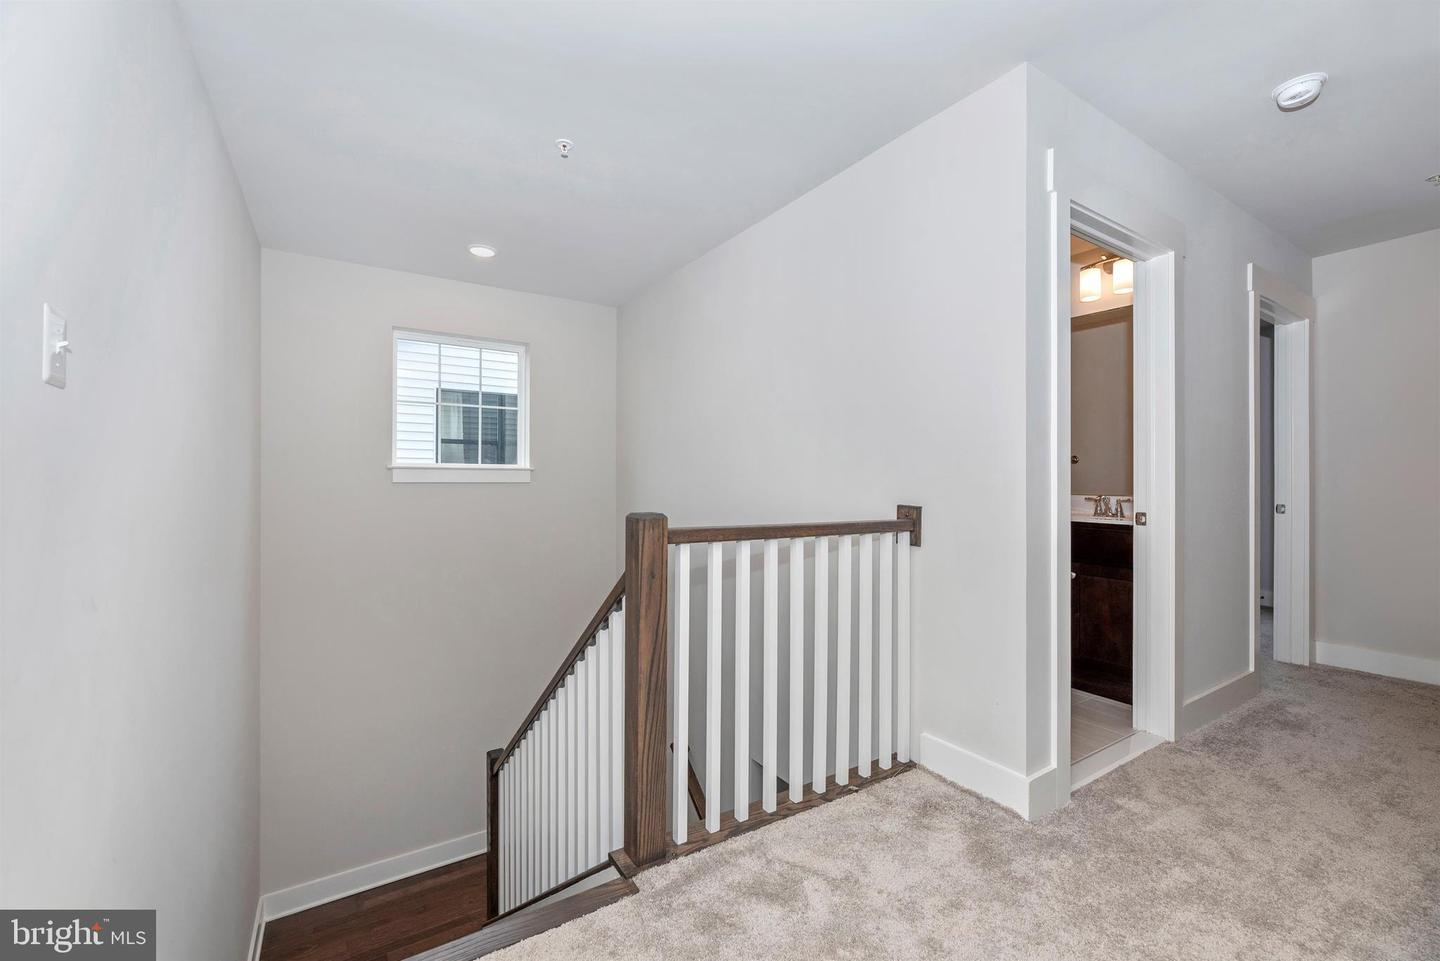 Additional photo for property listing at 607 Gillespie Dr Frederick, Maryland 21702 United States